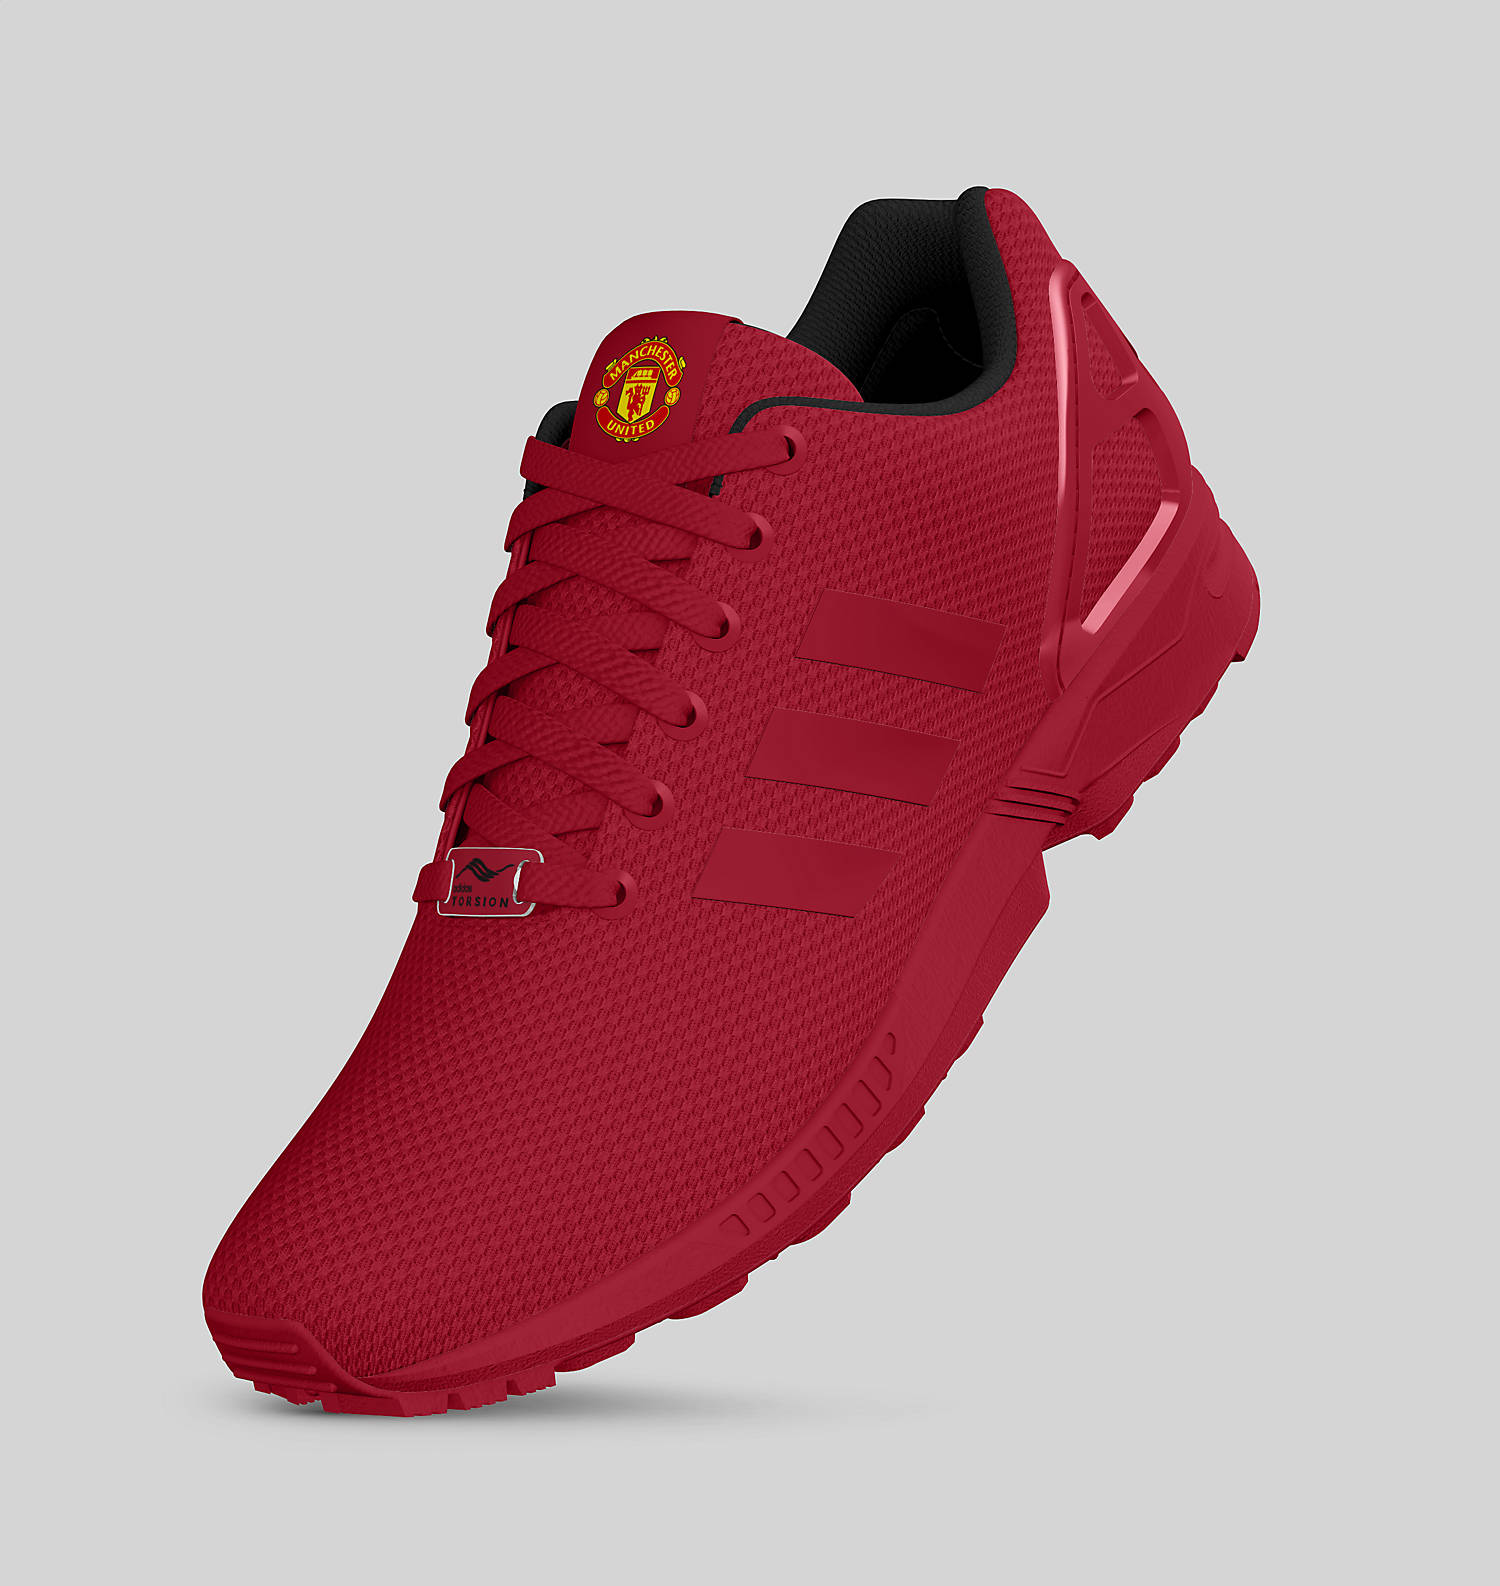 Adidas Liverpool Shoes